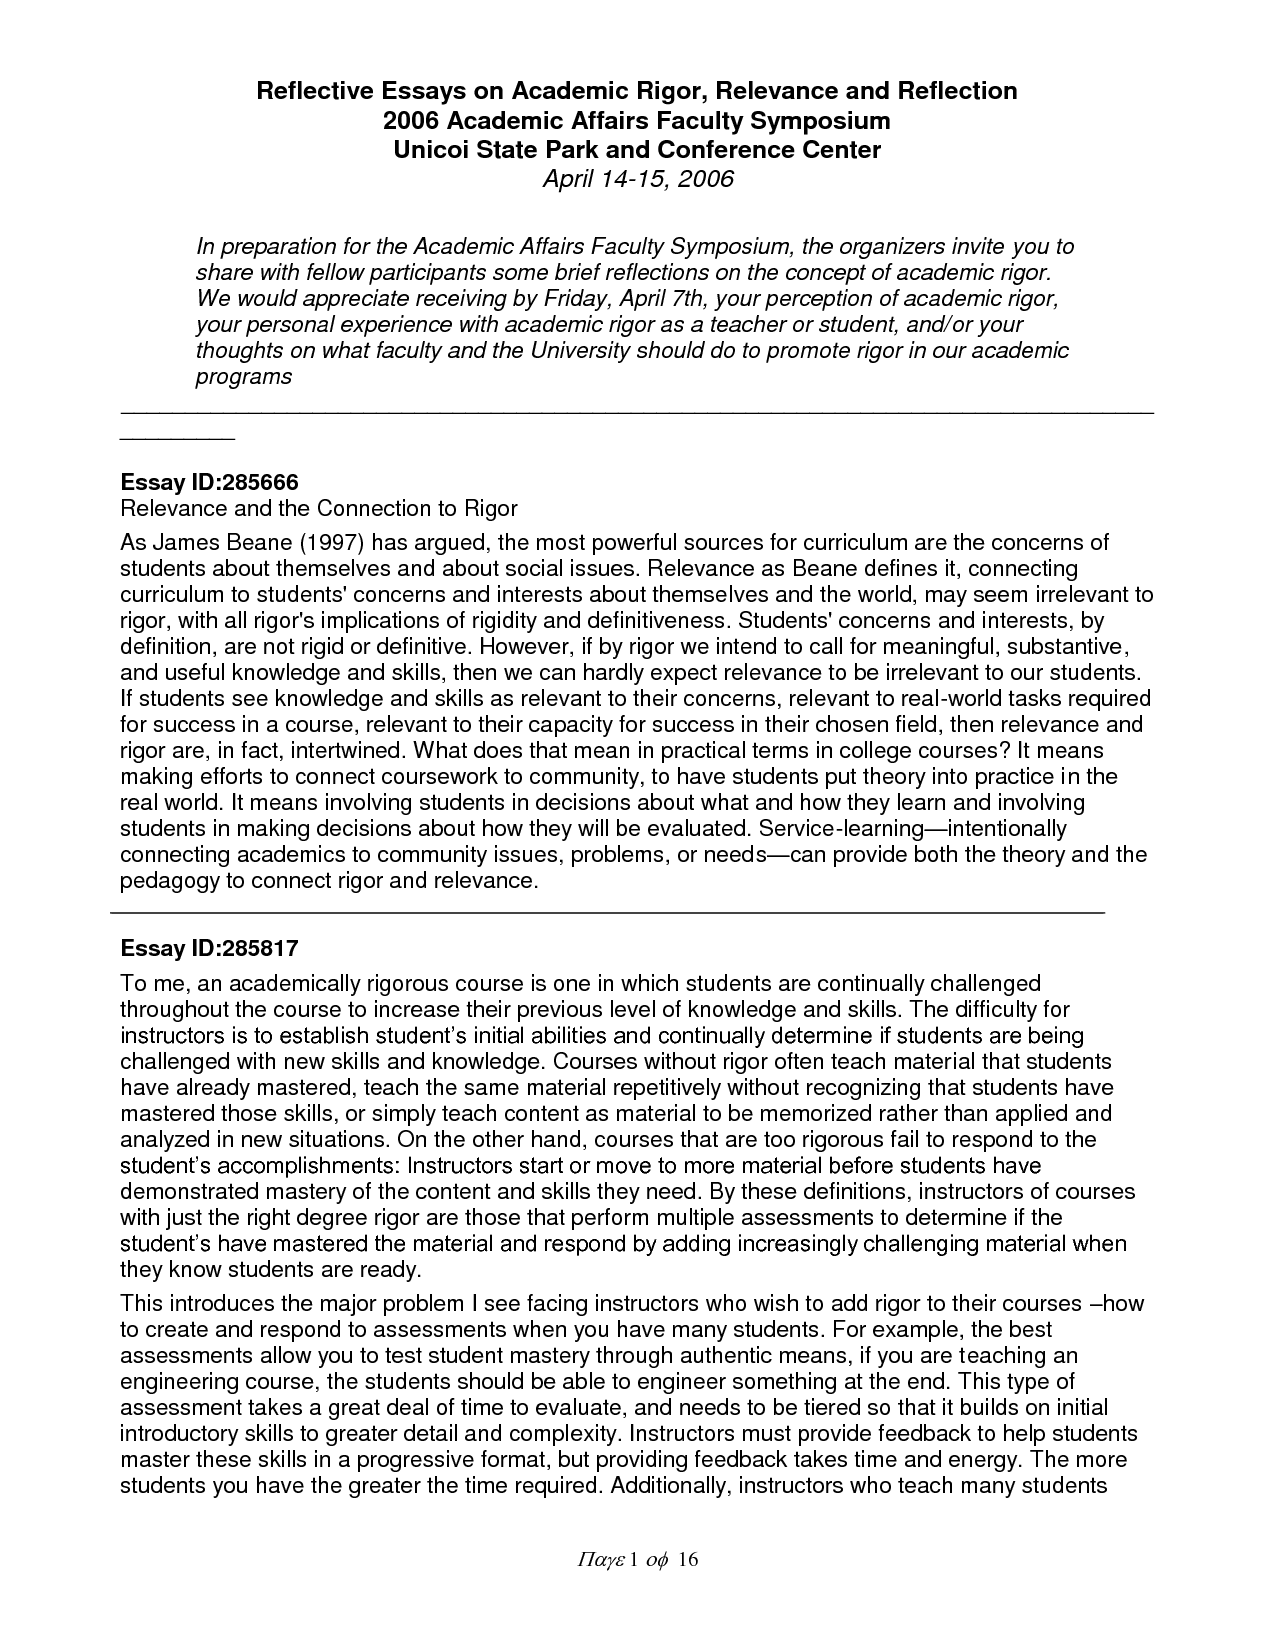 006 High School Essay Admission Samples Essays Amazing Literaryample Middle Template Topics Foremplification Thesis Statement Argumentative Example Definition Striking Literature Review Expository Full